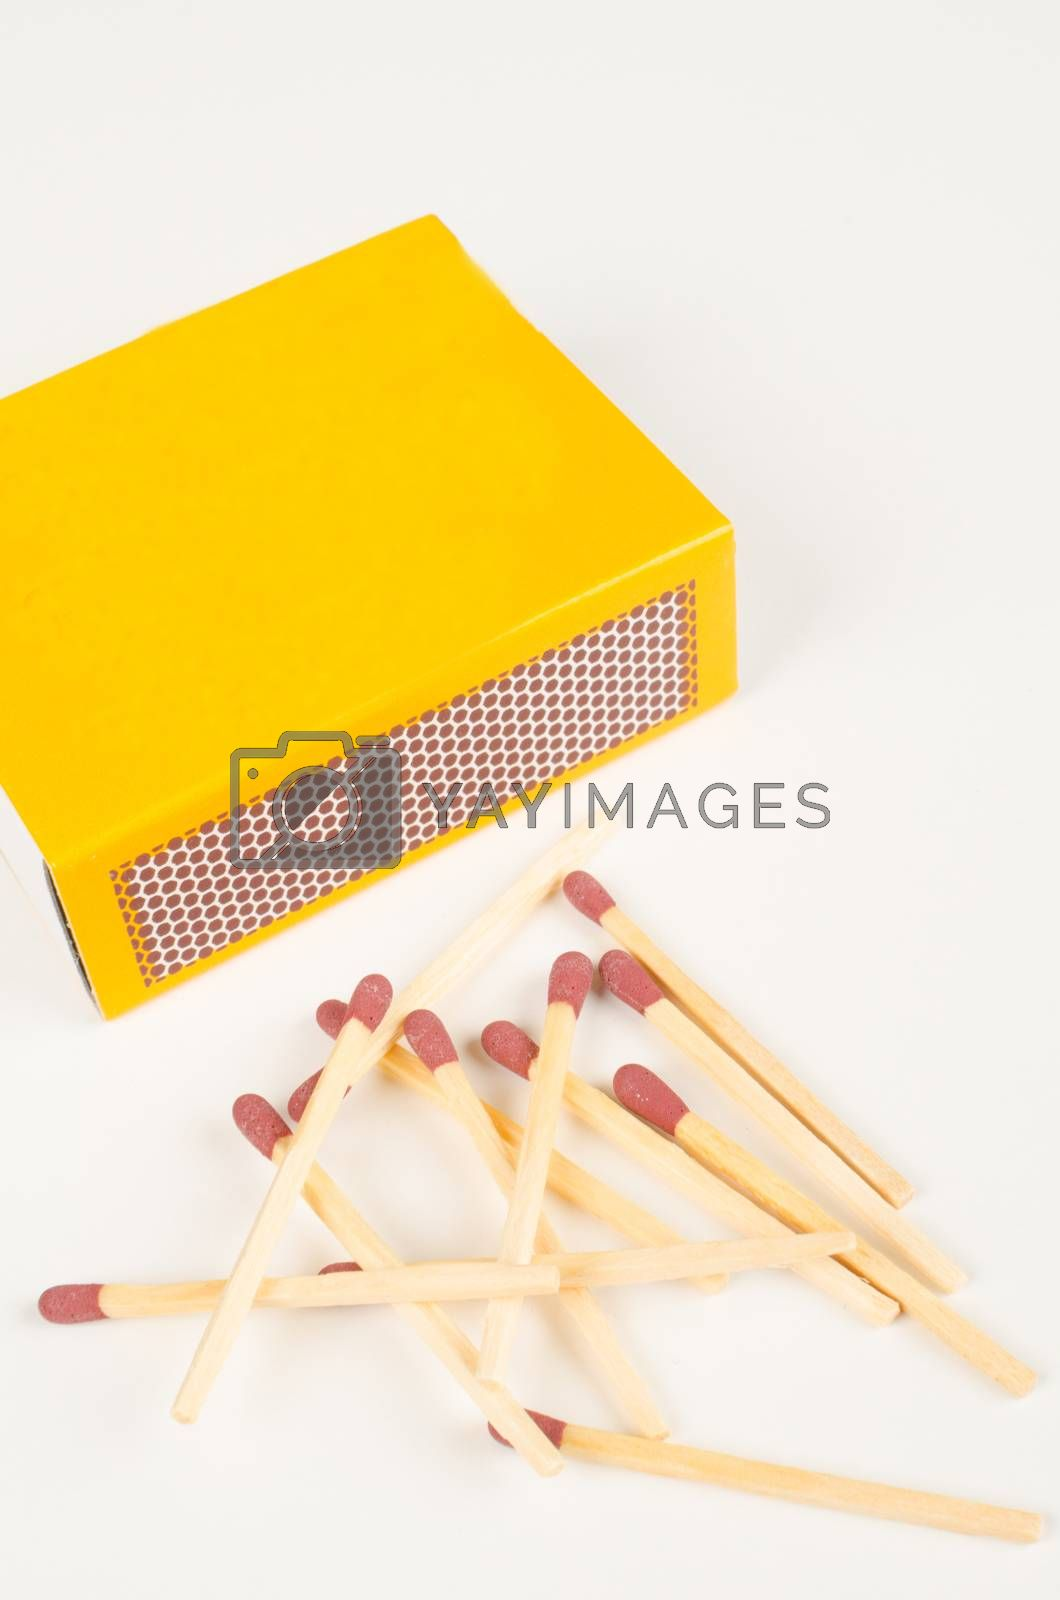 Wooden matches, matchbox and its striking surface